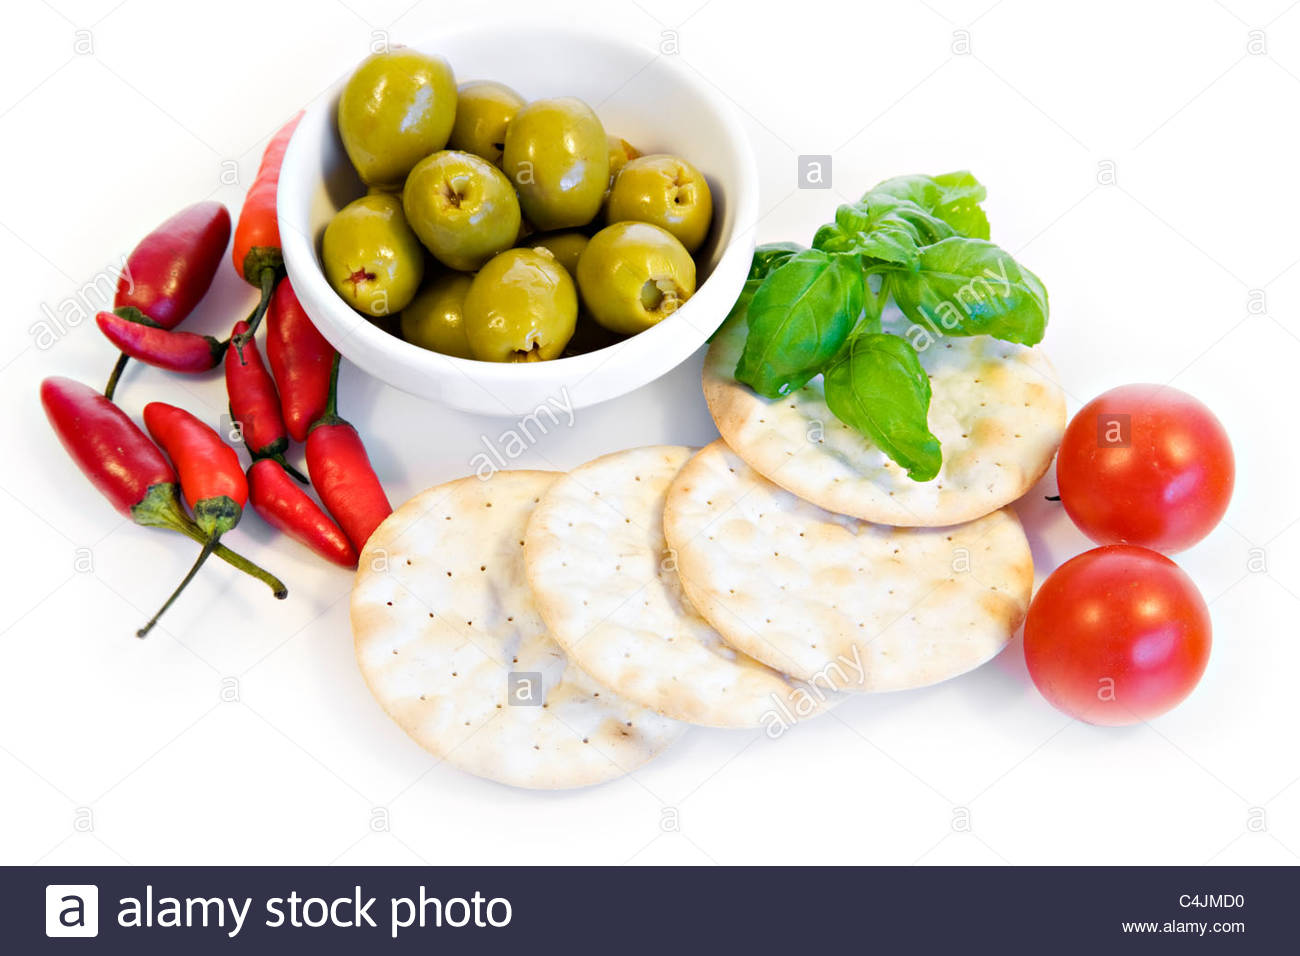 olives, hot chillies, cherry tomatoes and biscuits on white background - Stock Image